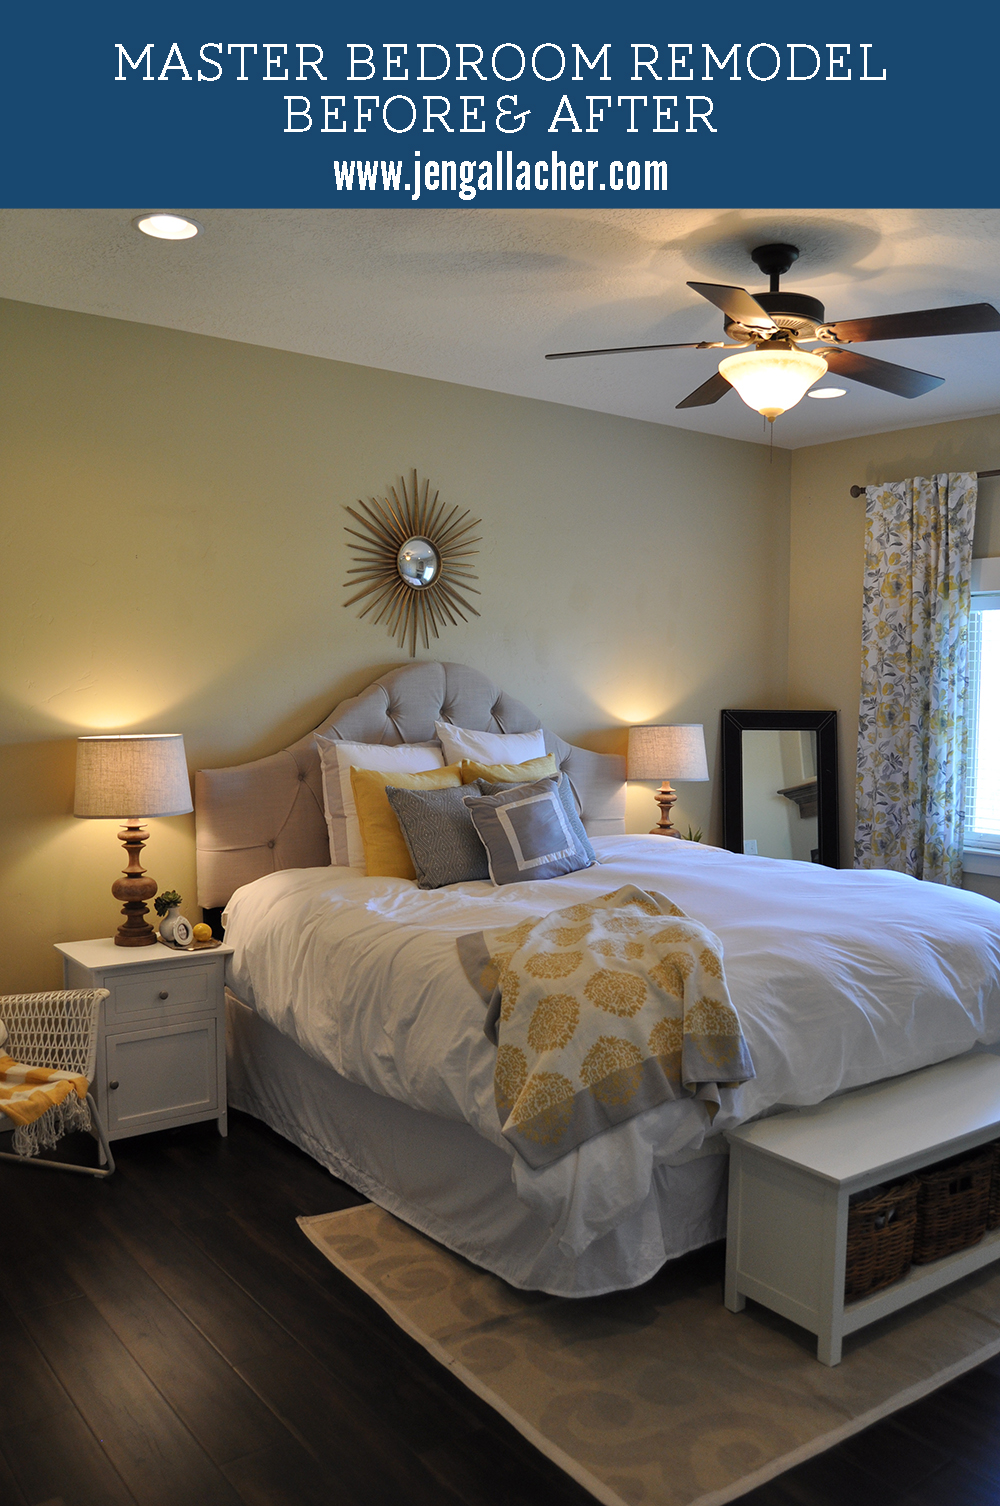 Jen Gallacher Master Bedroom Remodel Before And After